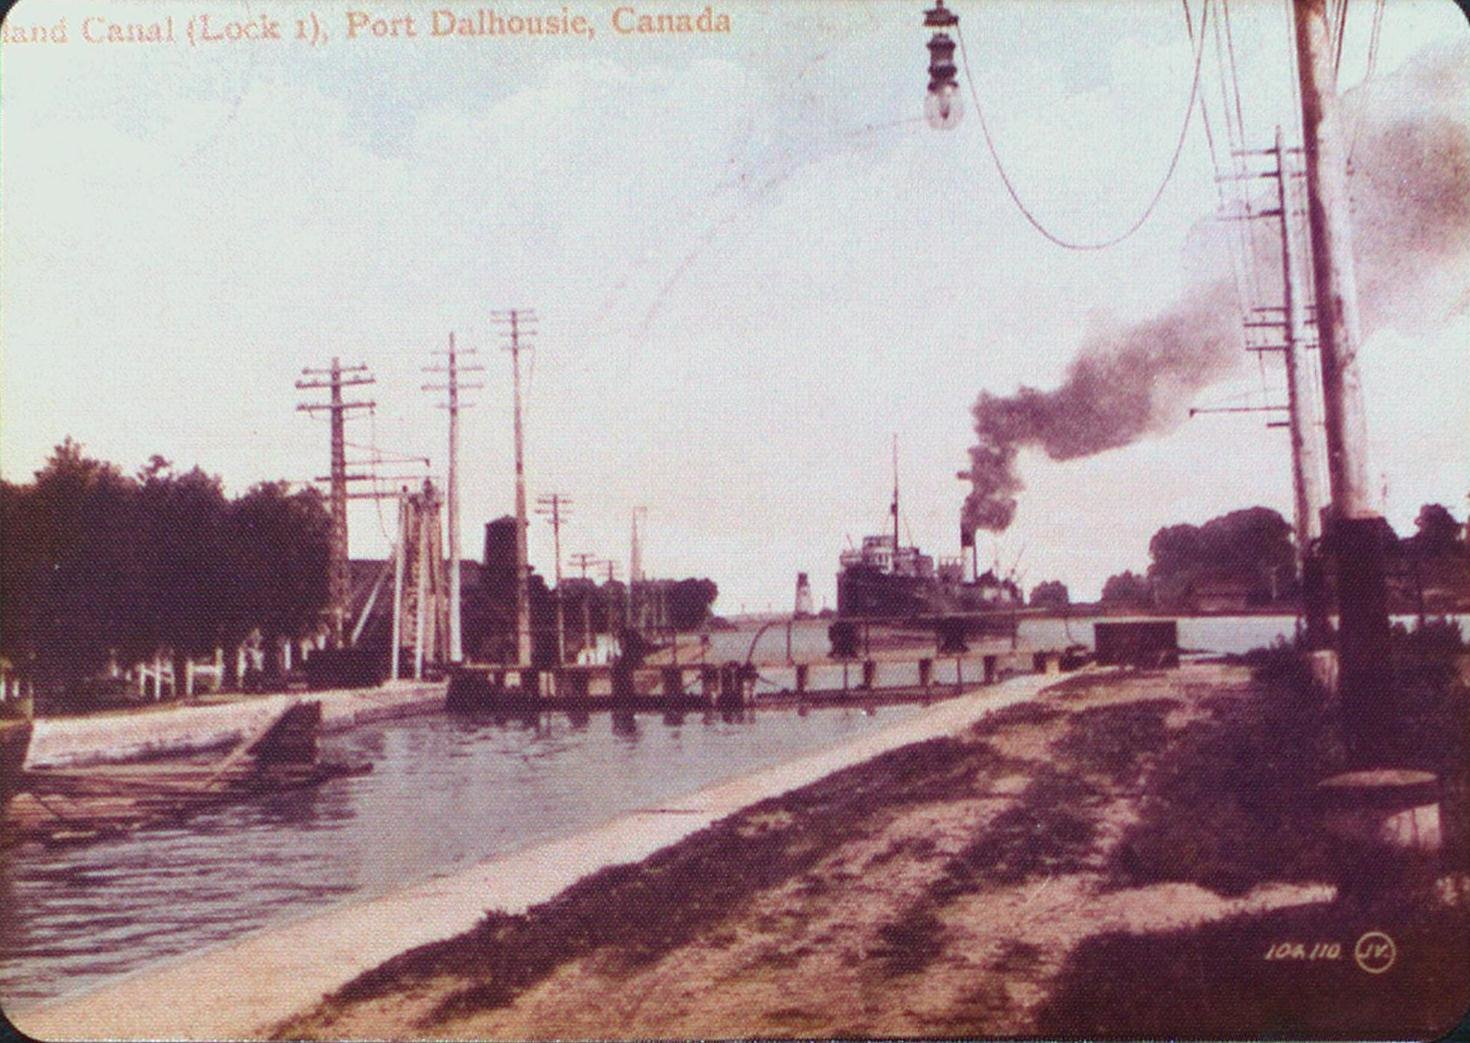 Welland Canal Lock 1, Port Dalhousie